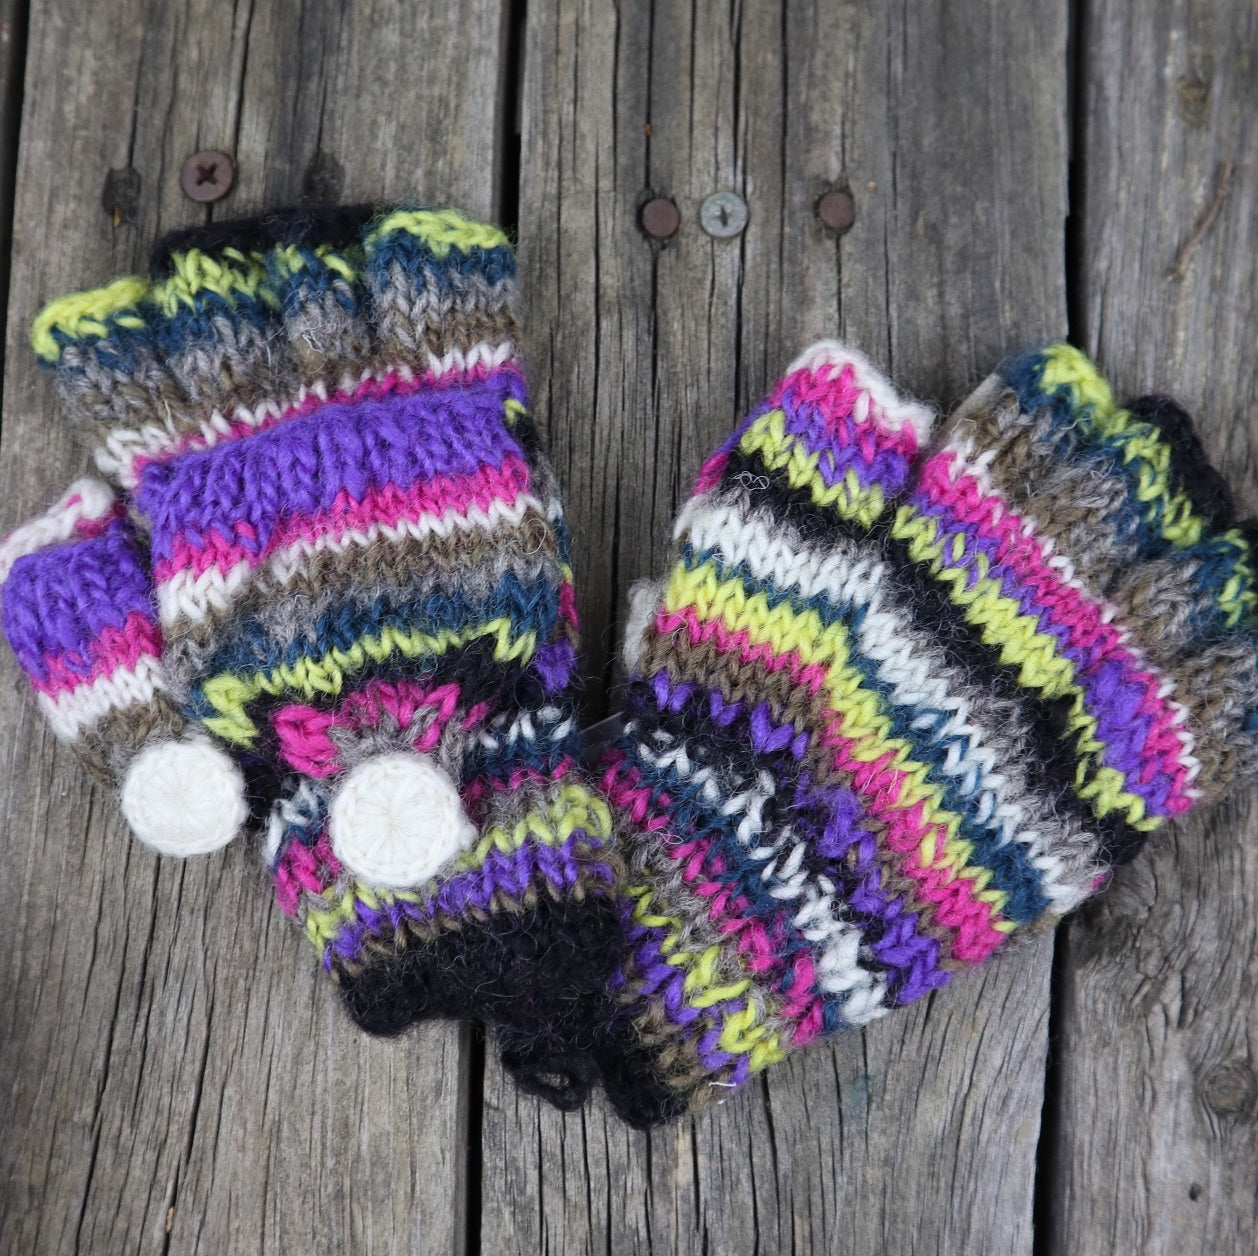 Fair Trade Ethical Children's Striped Fingerless Gloves with Cap in Pink, Purple, Yellow and Green